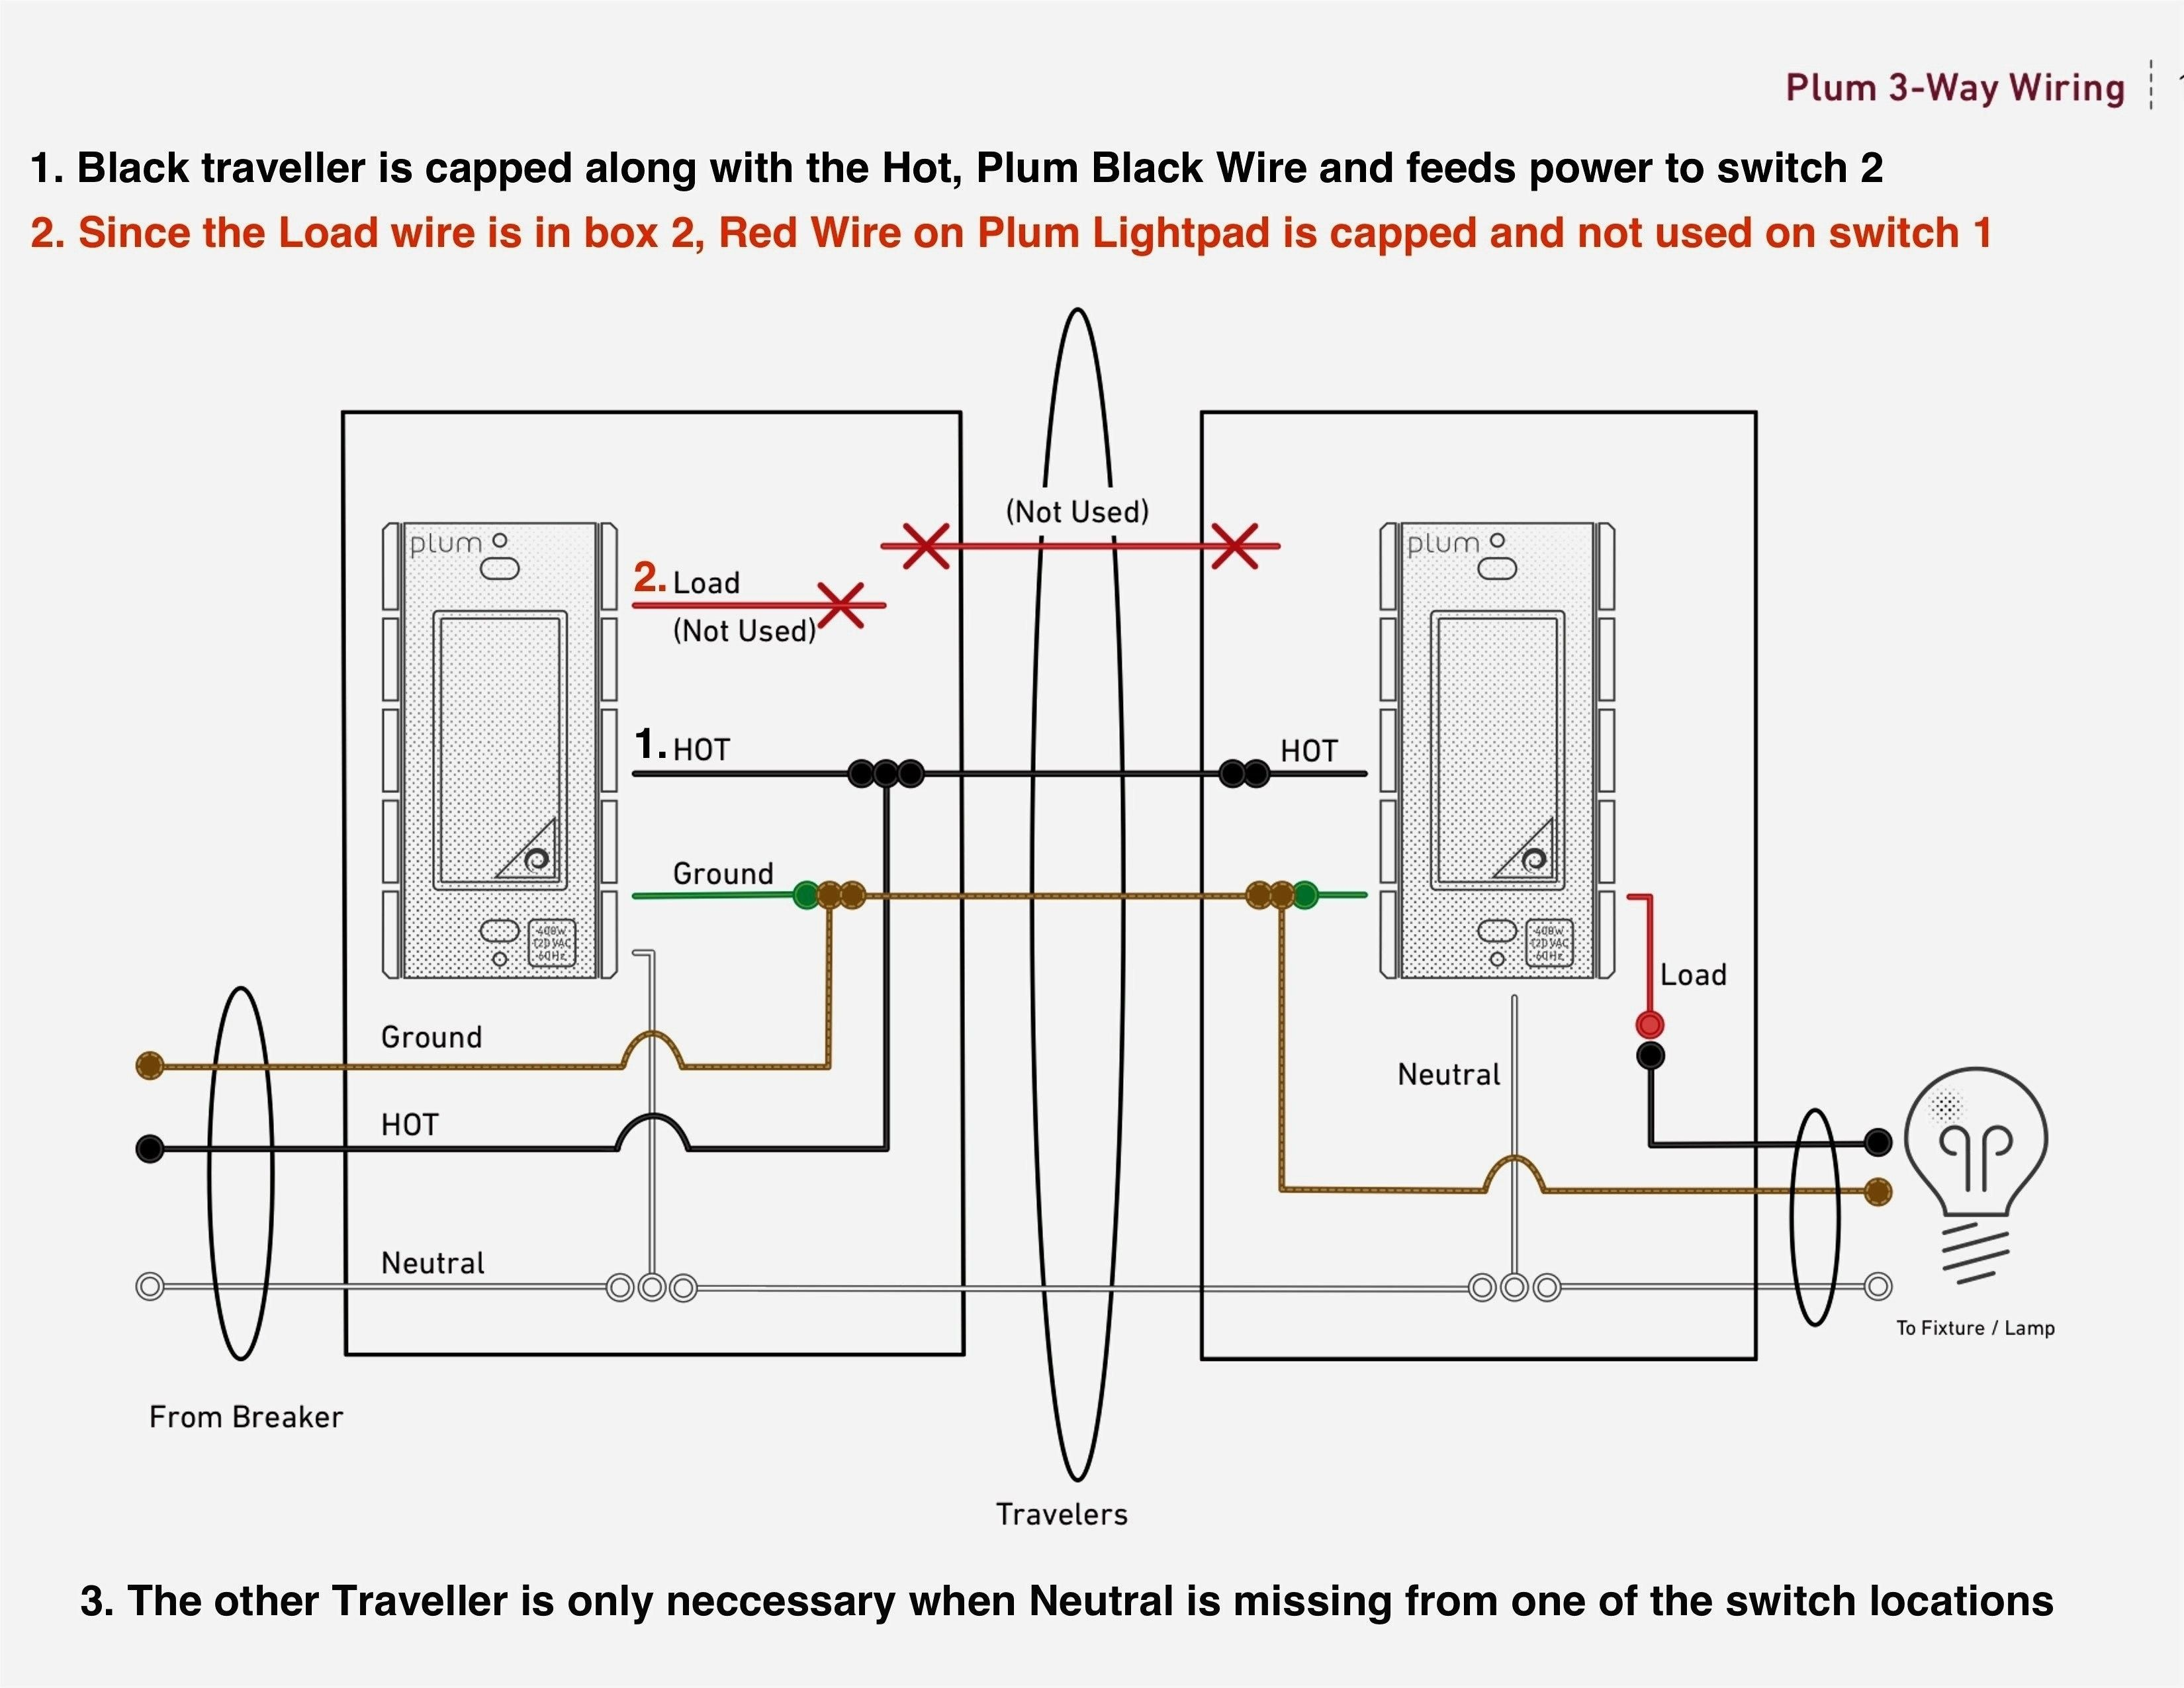 Unique Schematic Symbol Switch Diagram Wiringdiagram Diagramming Diagramm Visuals Visua Light Switch Wiring 3 Way Switch Wiring Electrical Wiring Diagram